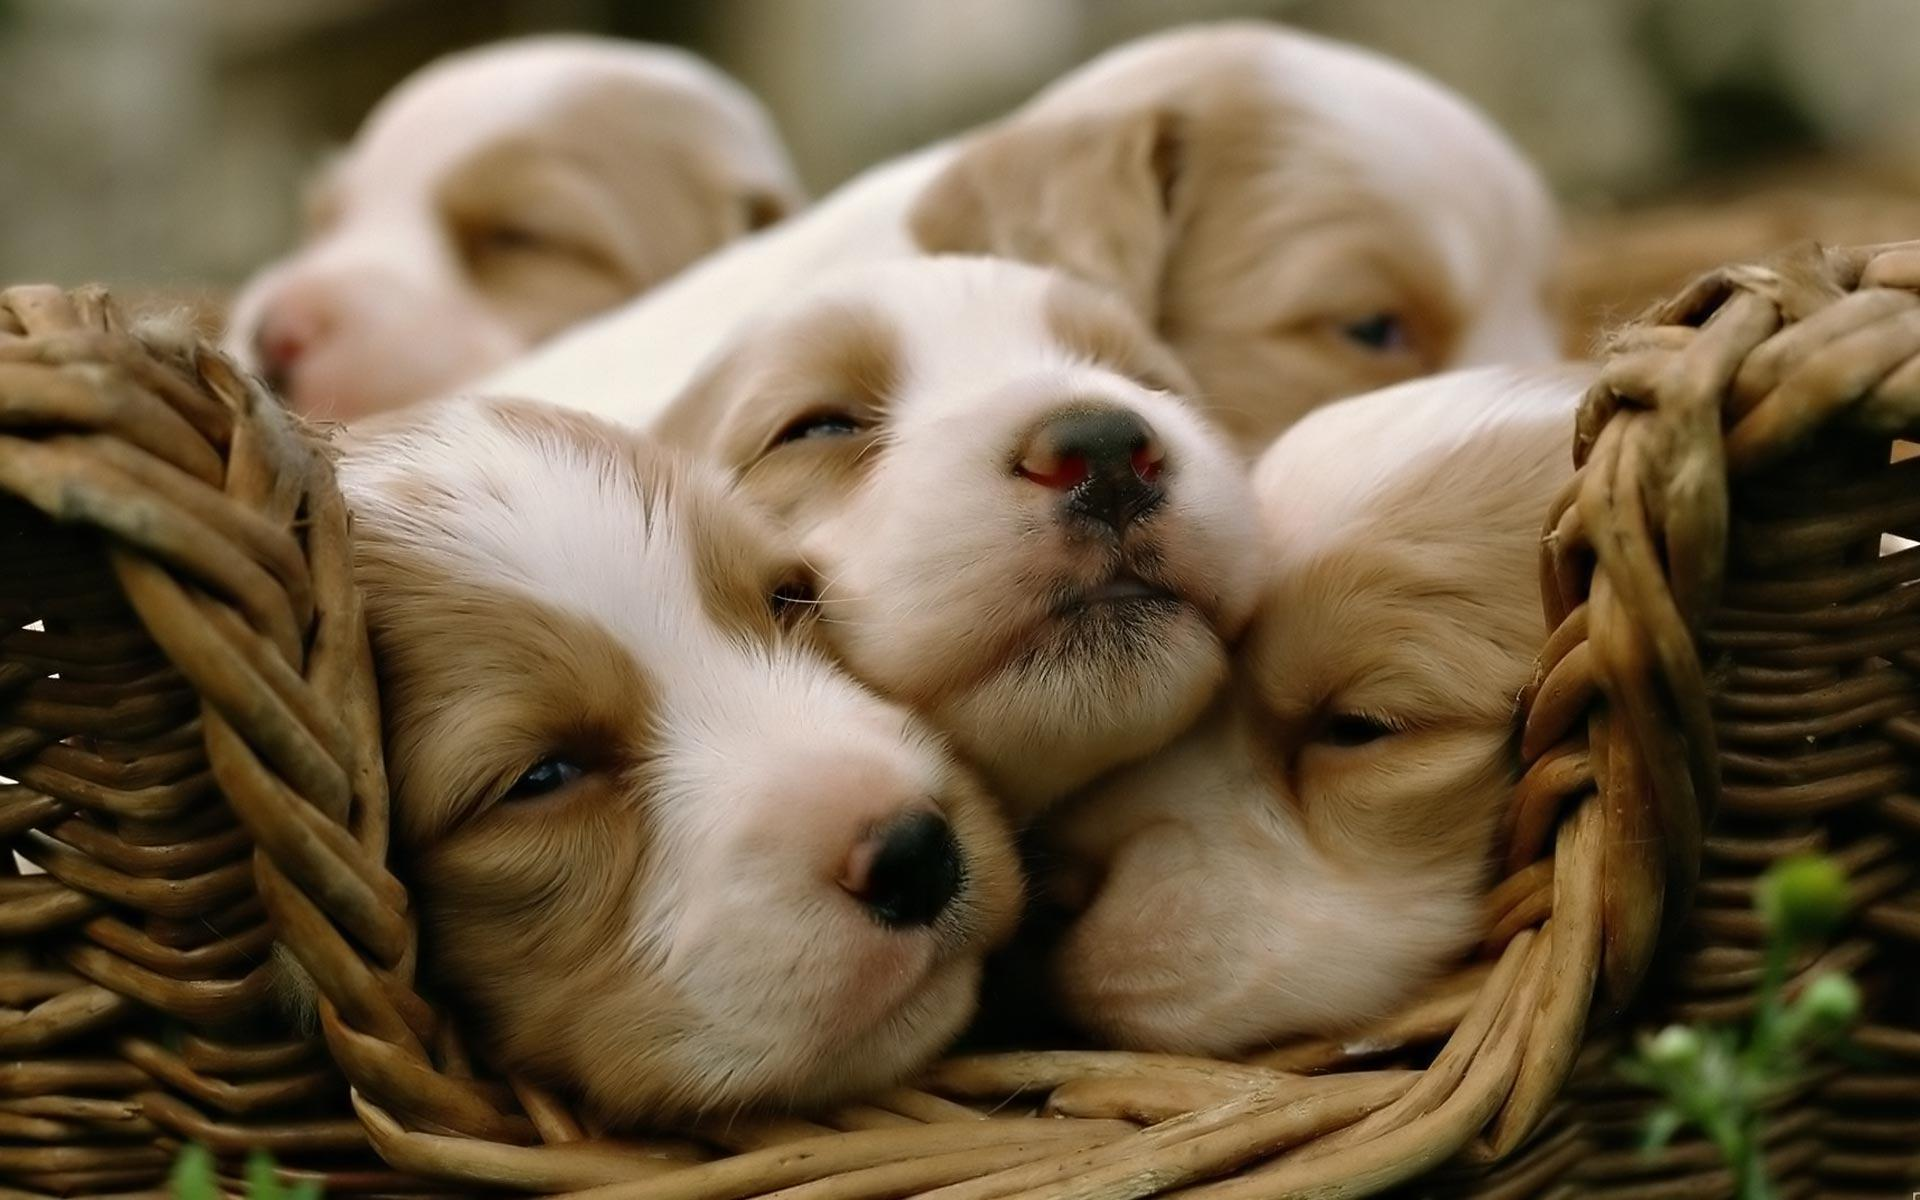 desktop backgrounds animal life dogs puppy dogs cute